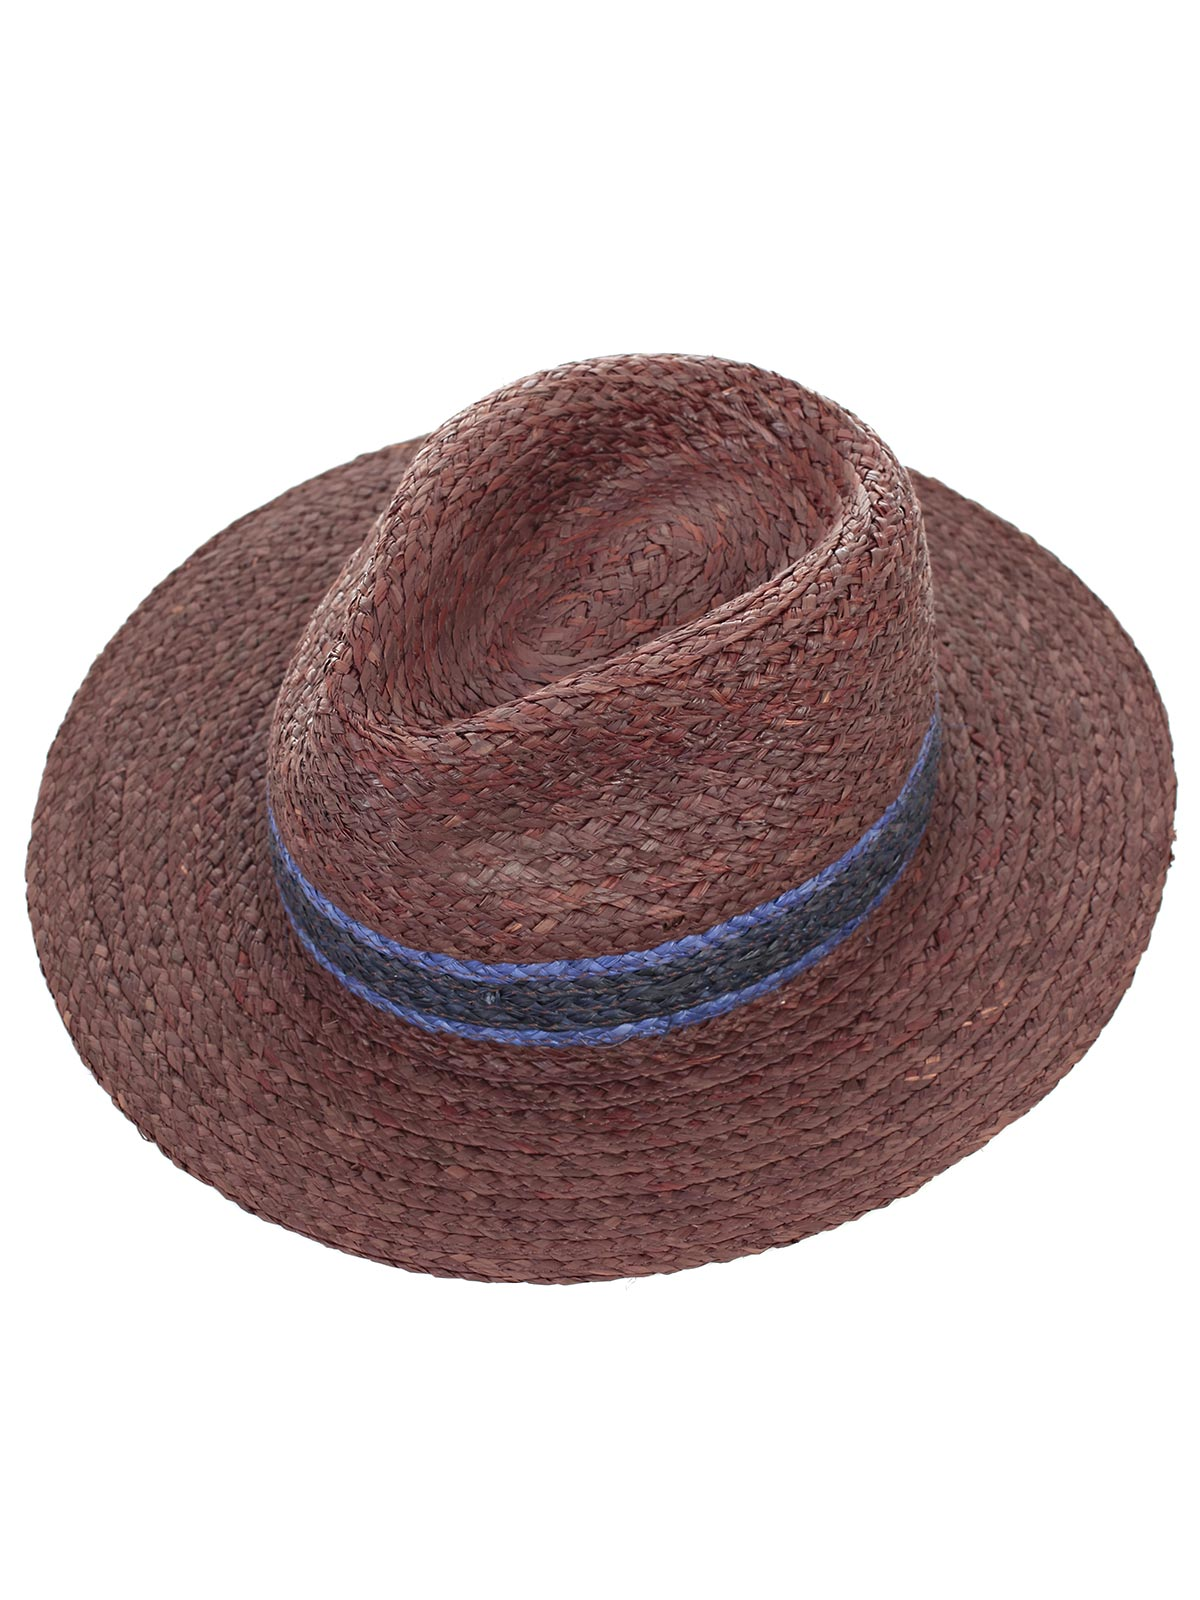 Picture of PAUL SMITH HAT